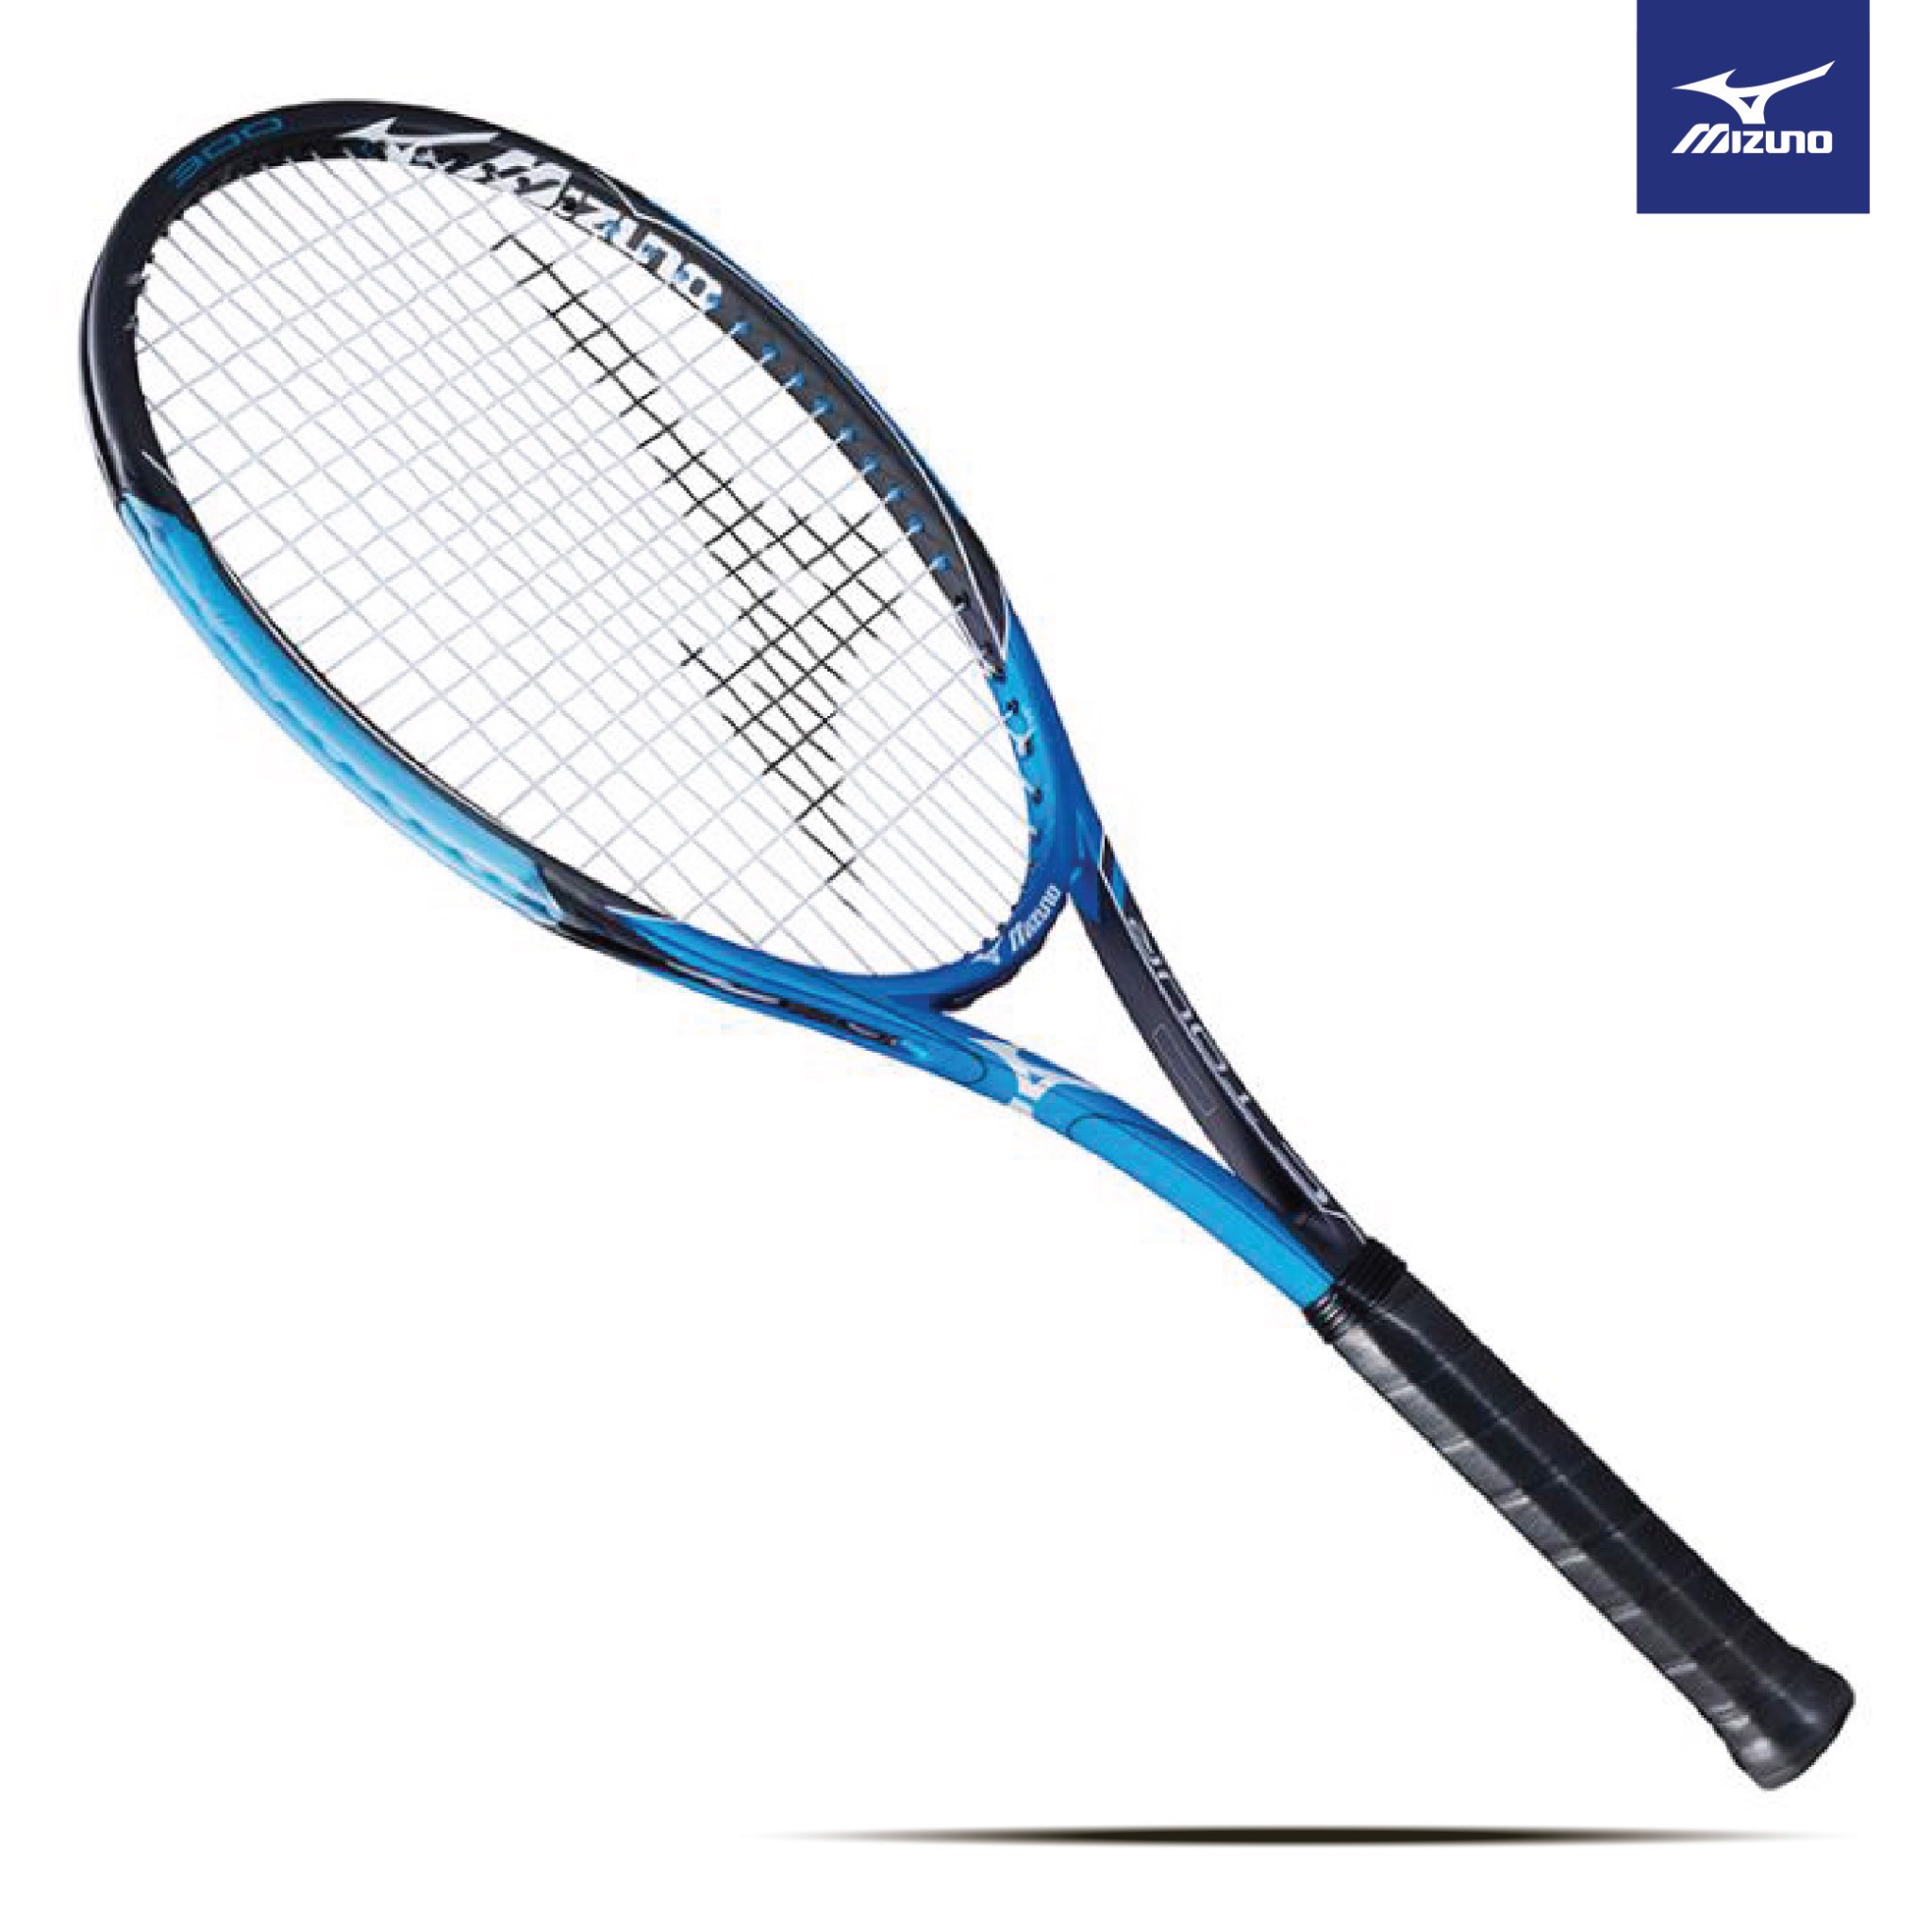 VỢT TENNIS C TOUR 300